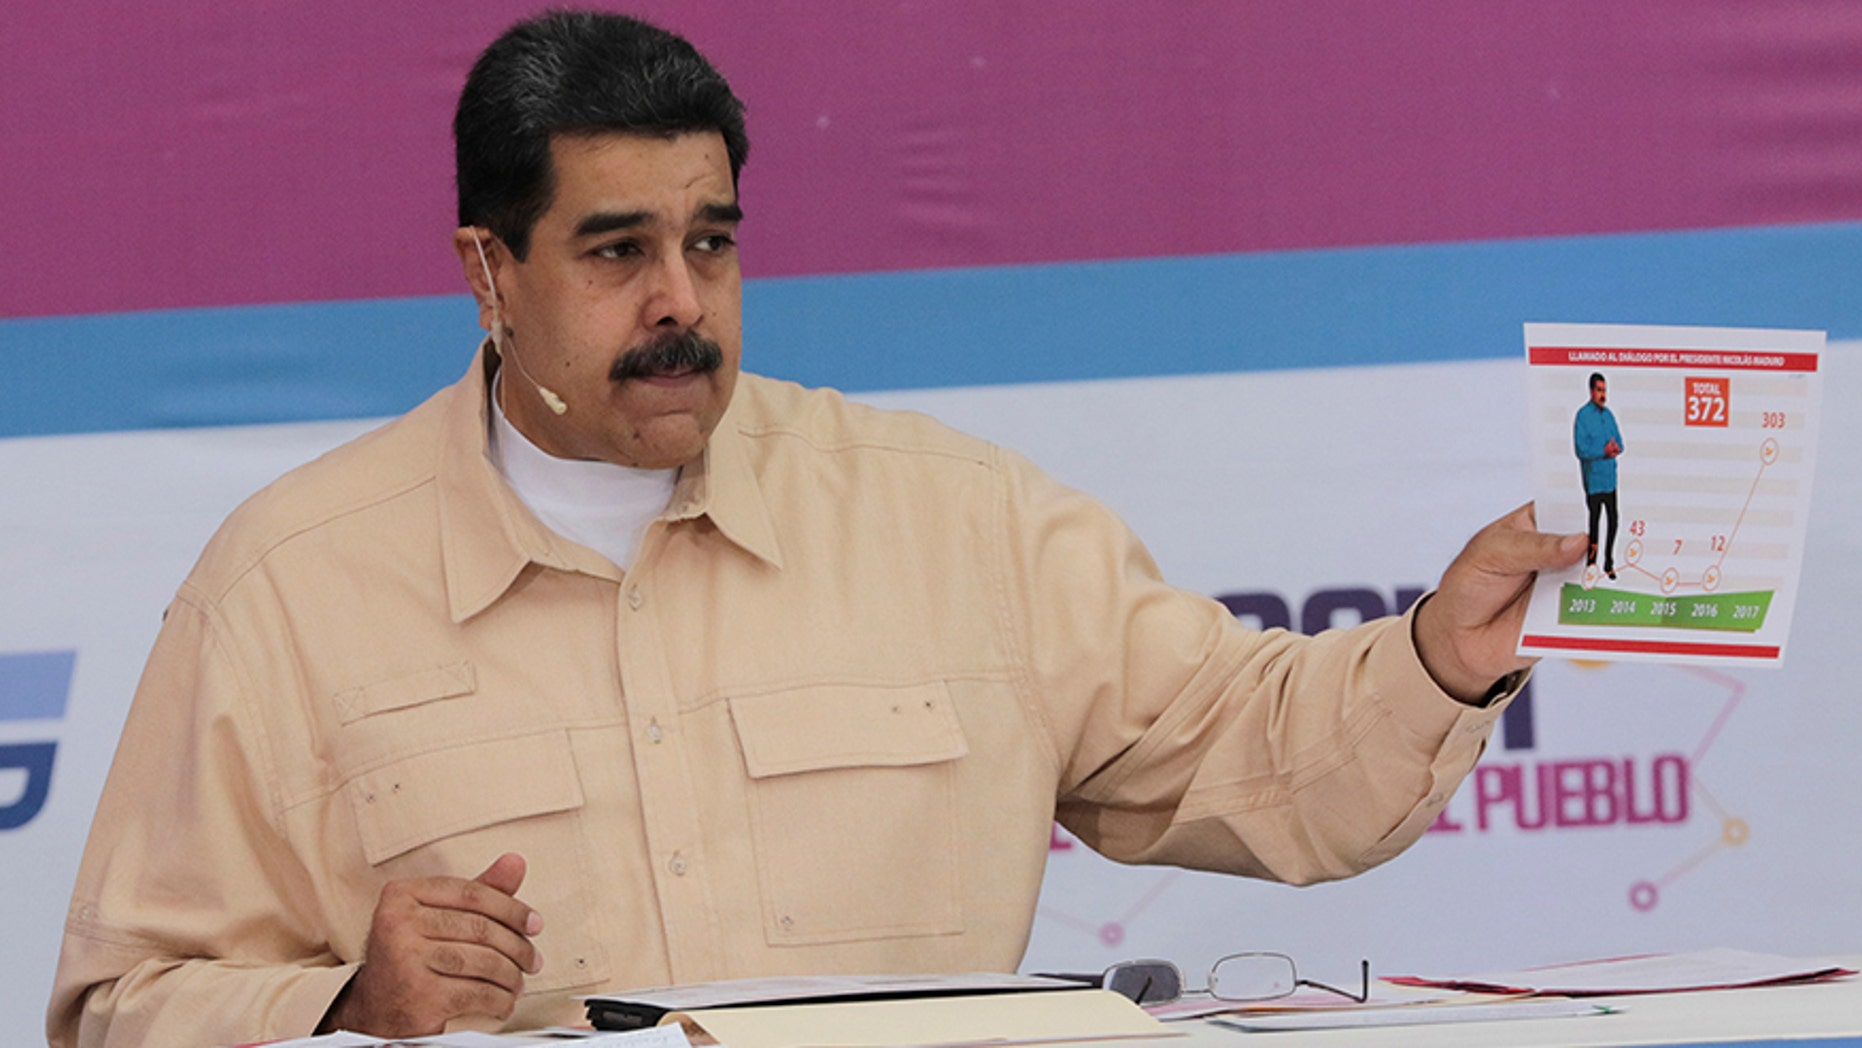 Venezuela President Nicolas Maduro speaks during his weekly radio and TV broadcast on Dec. 3, 2017.